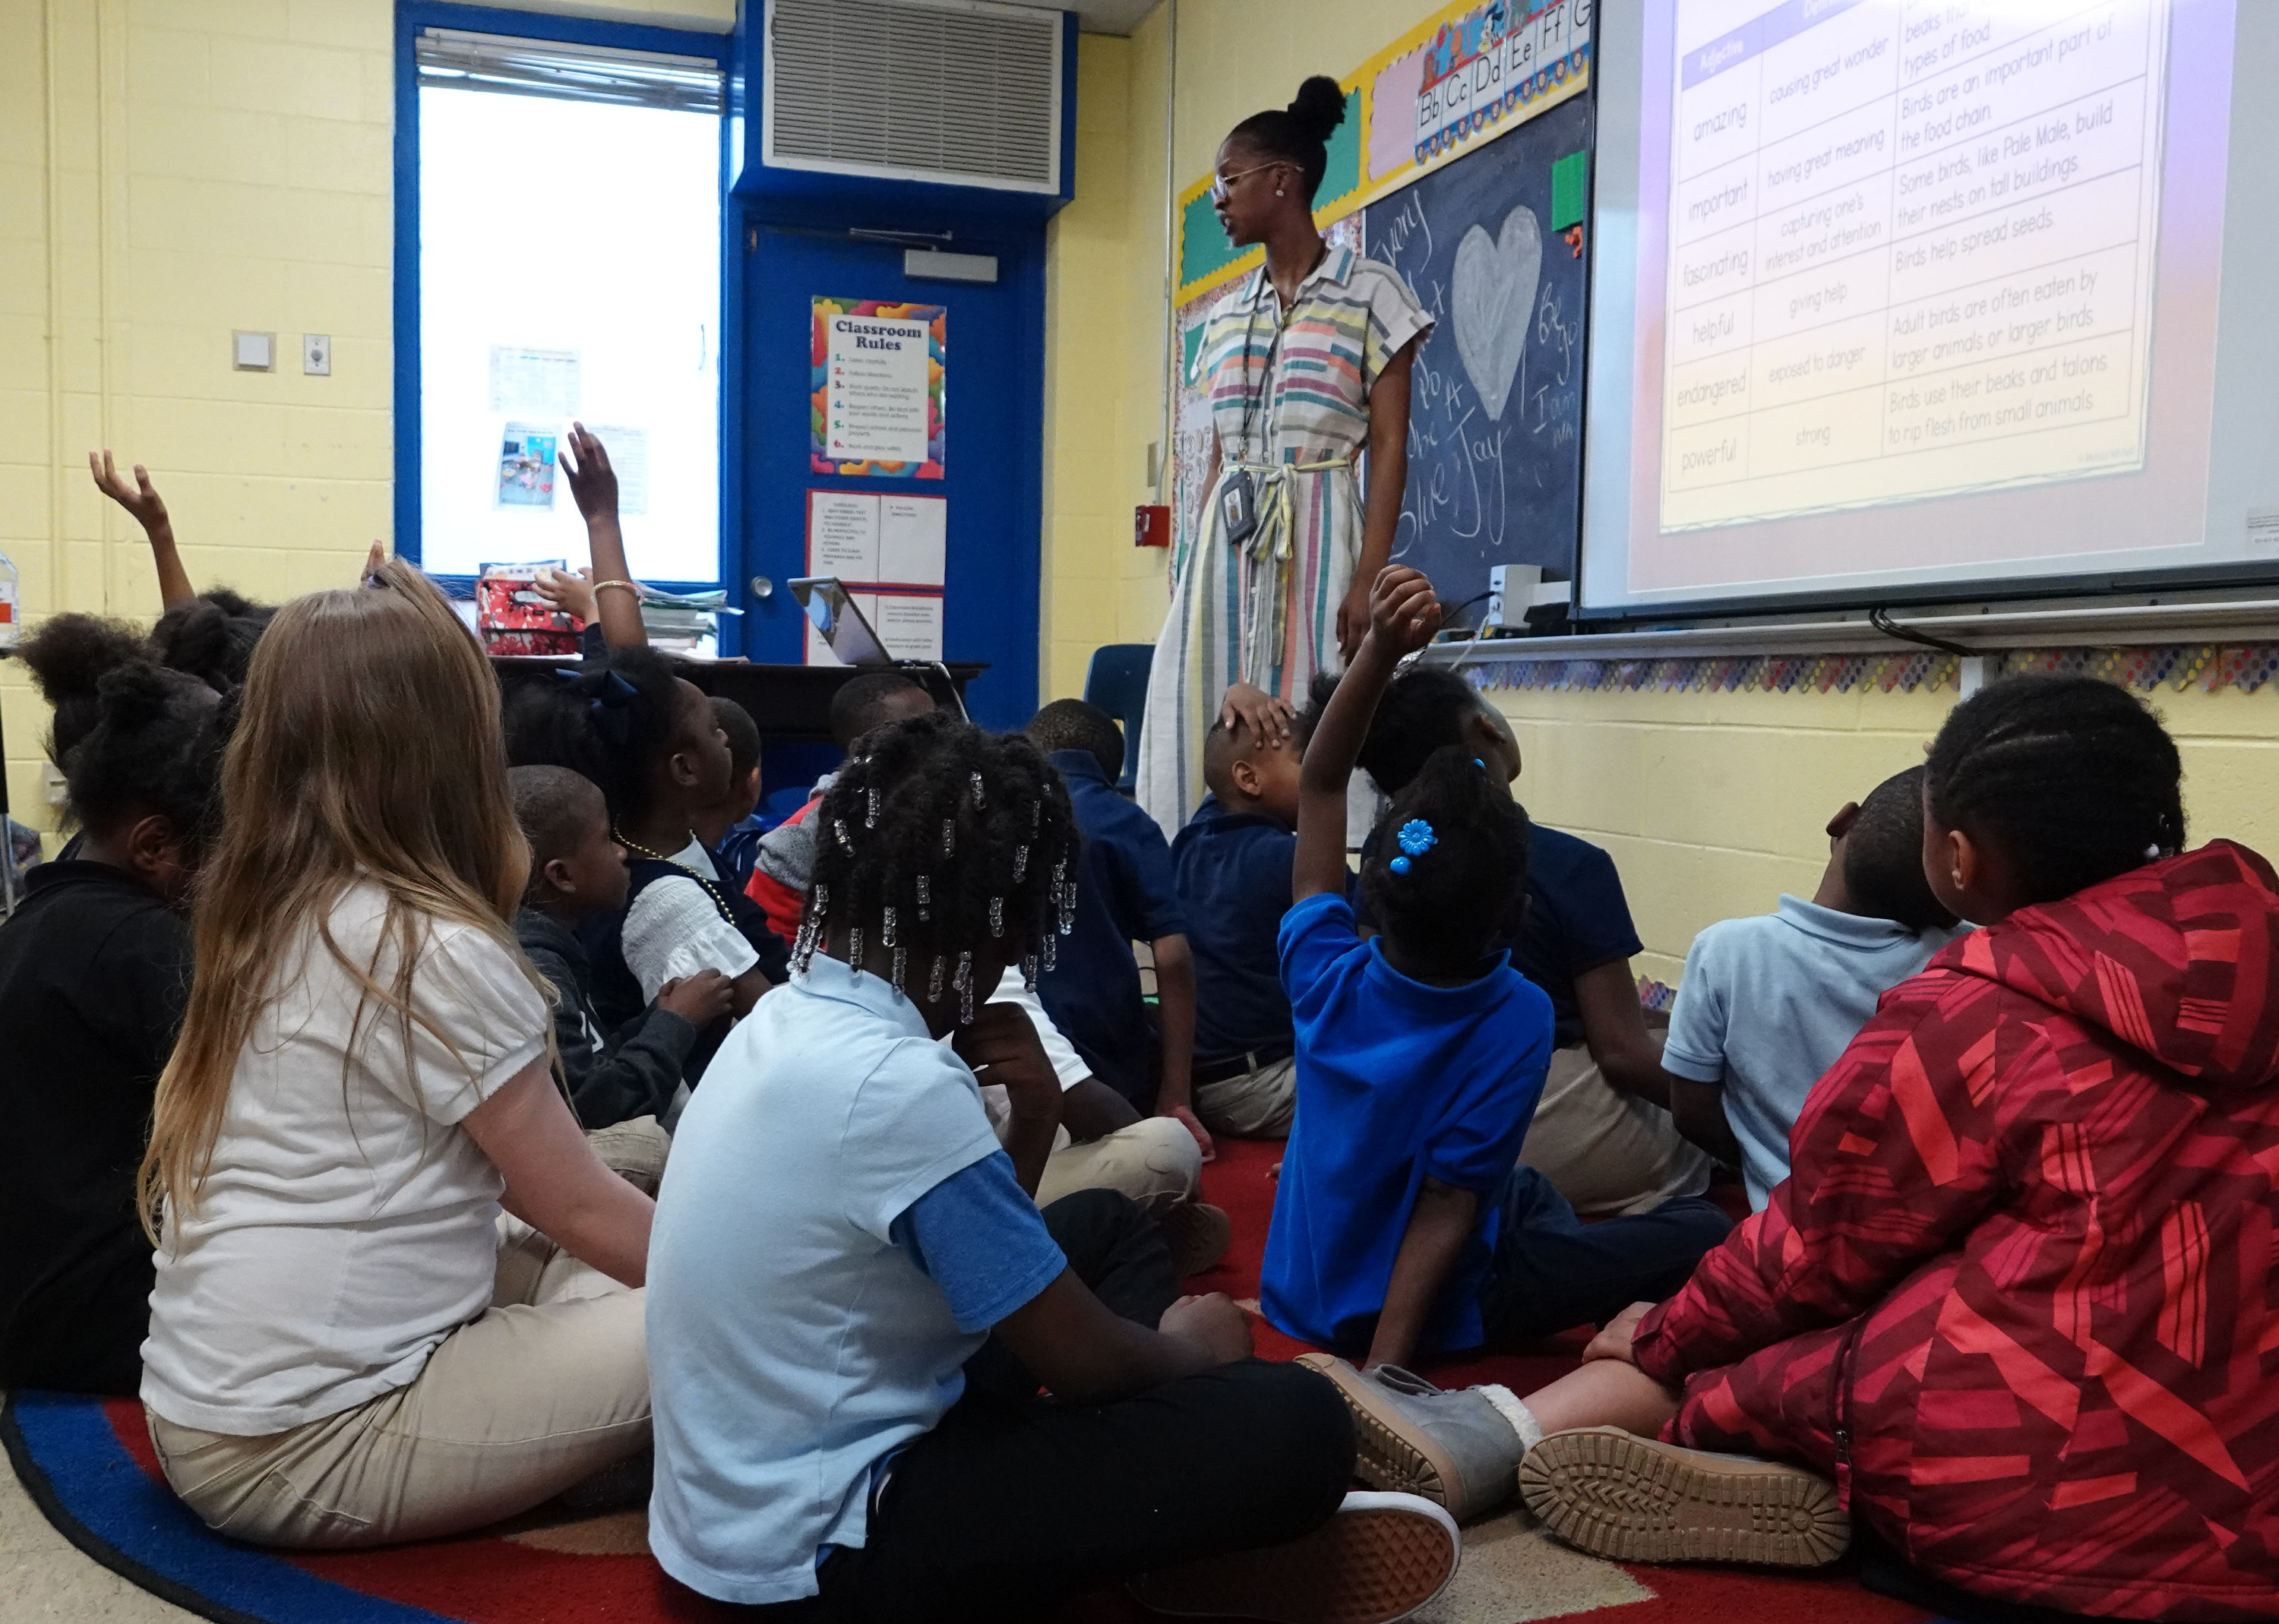 Students raise their hands in a classroom at Gardenview Elementary School in Memphis in this file photo from May 2019.